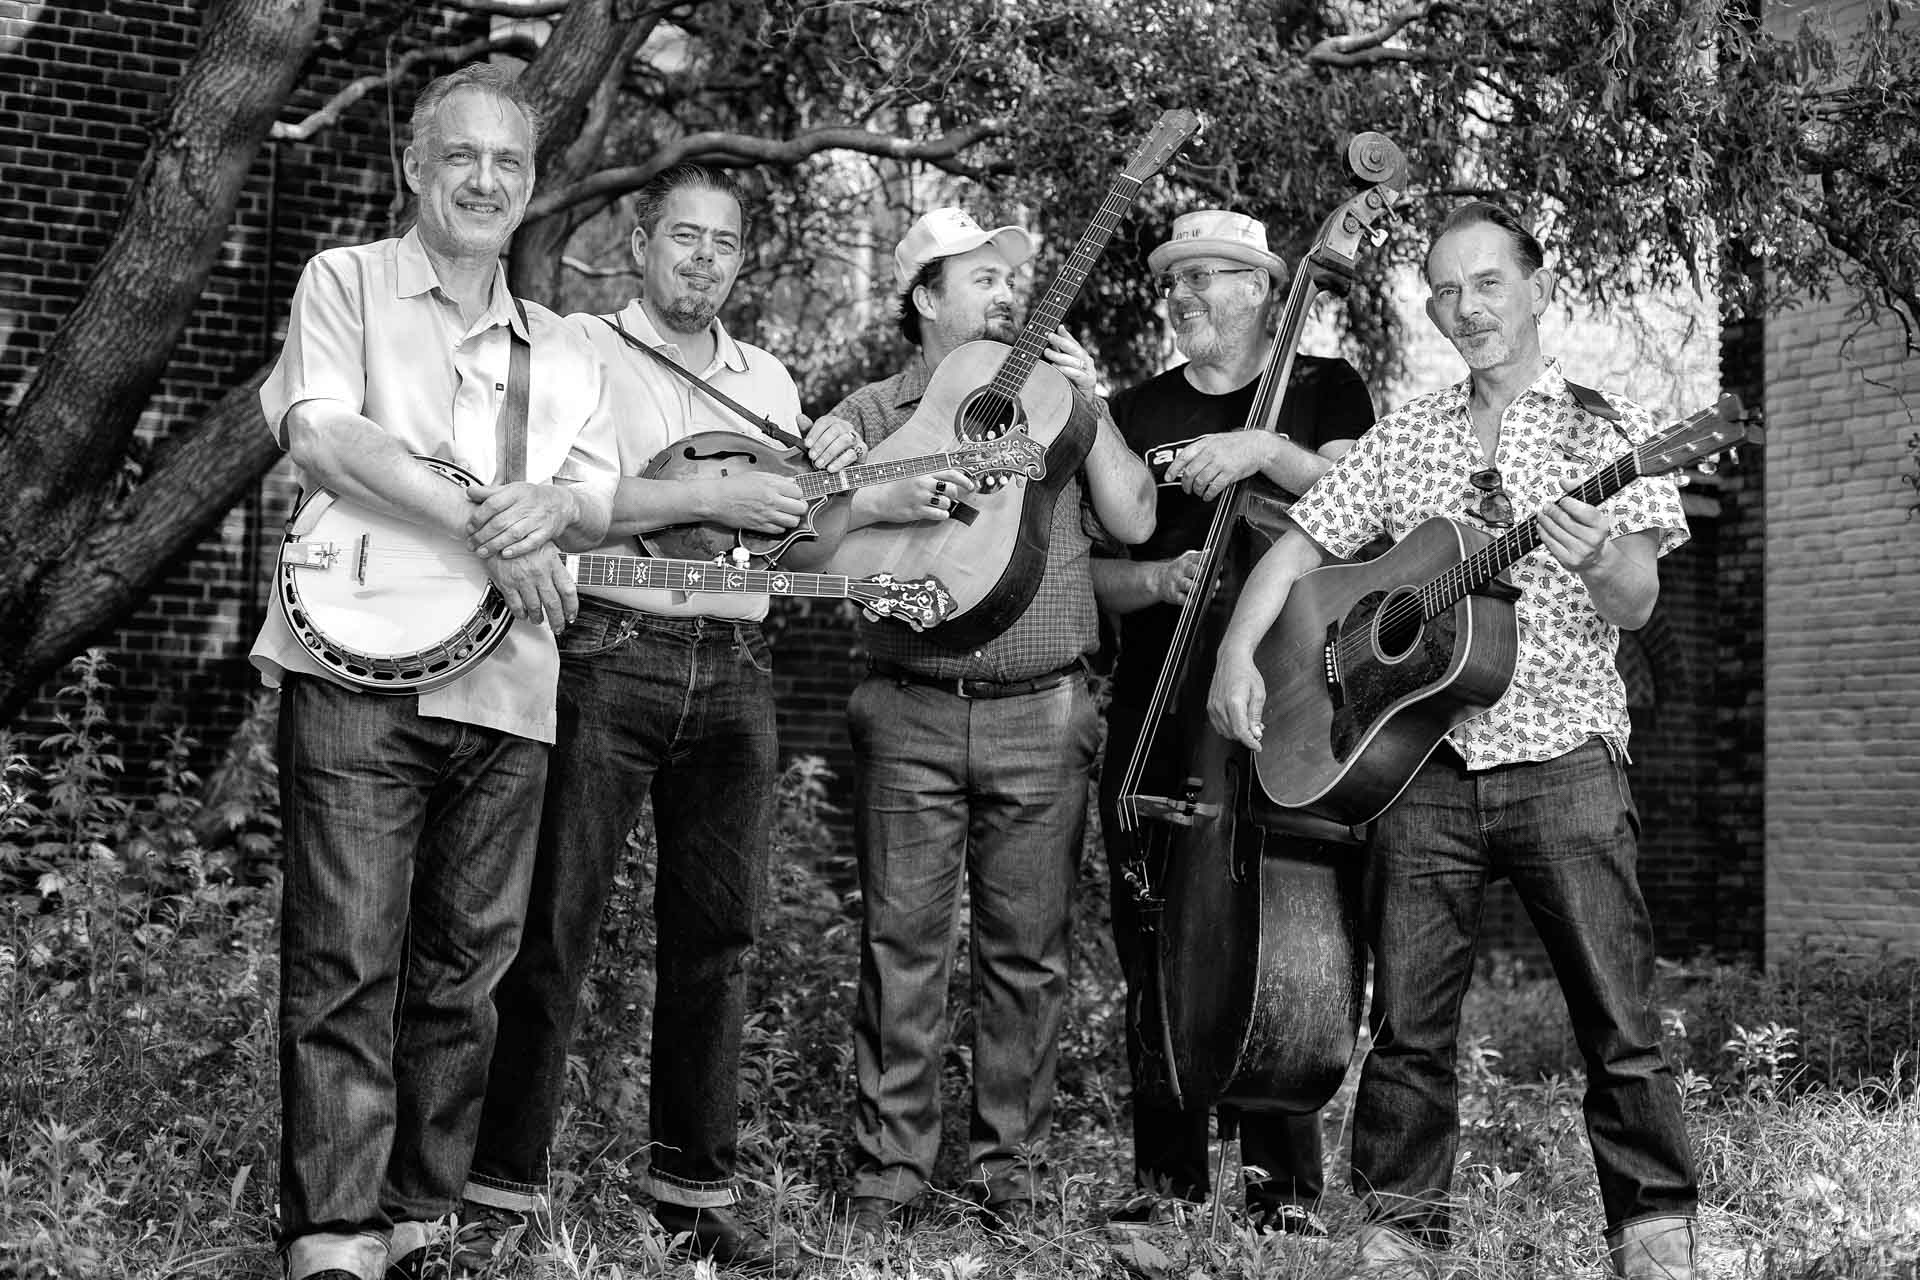 Tim Knol & Blue Grass Boogiemen